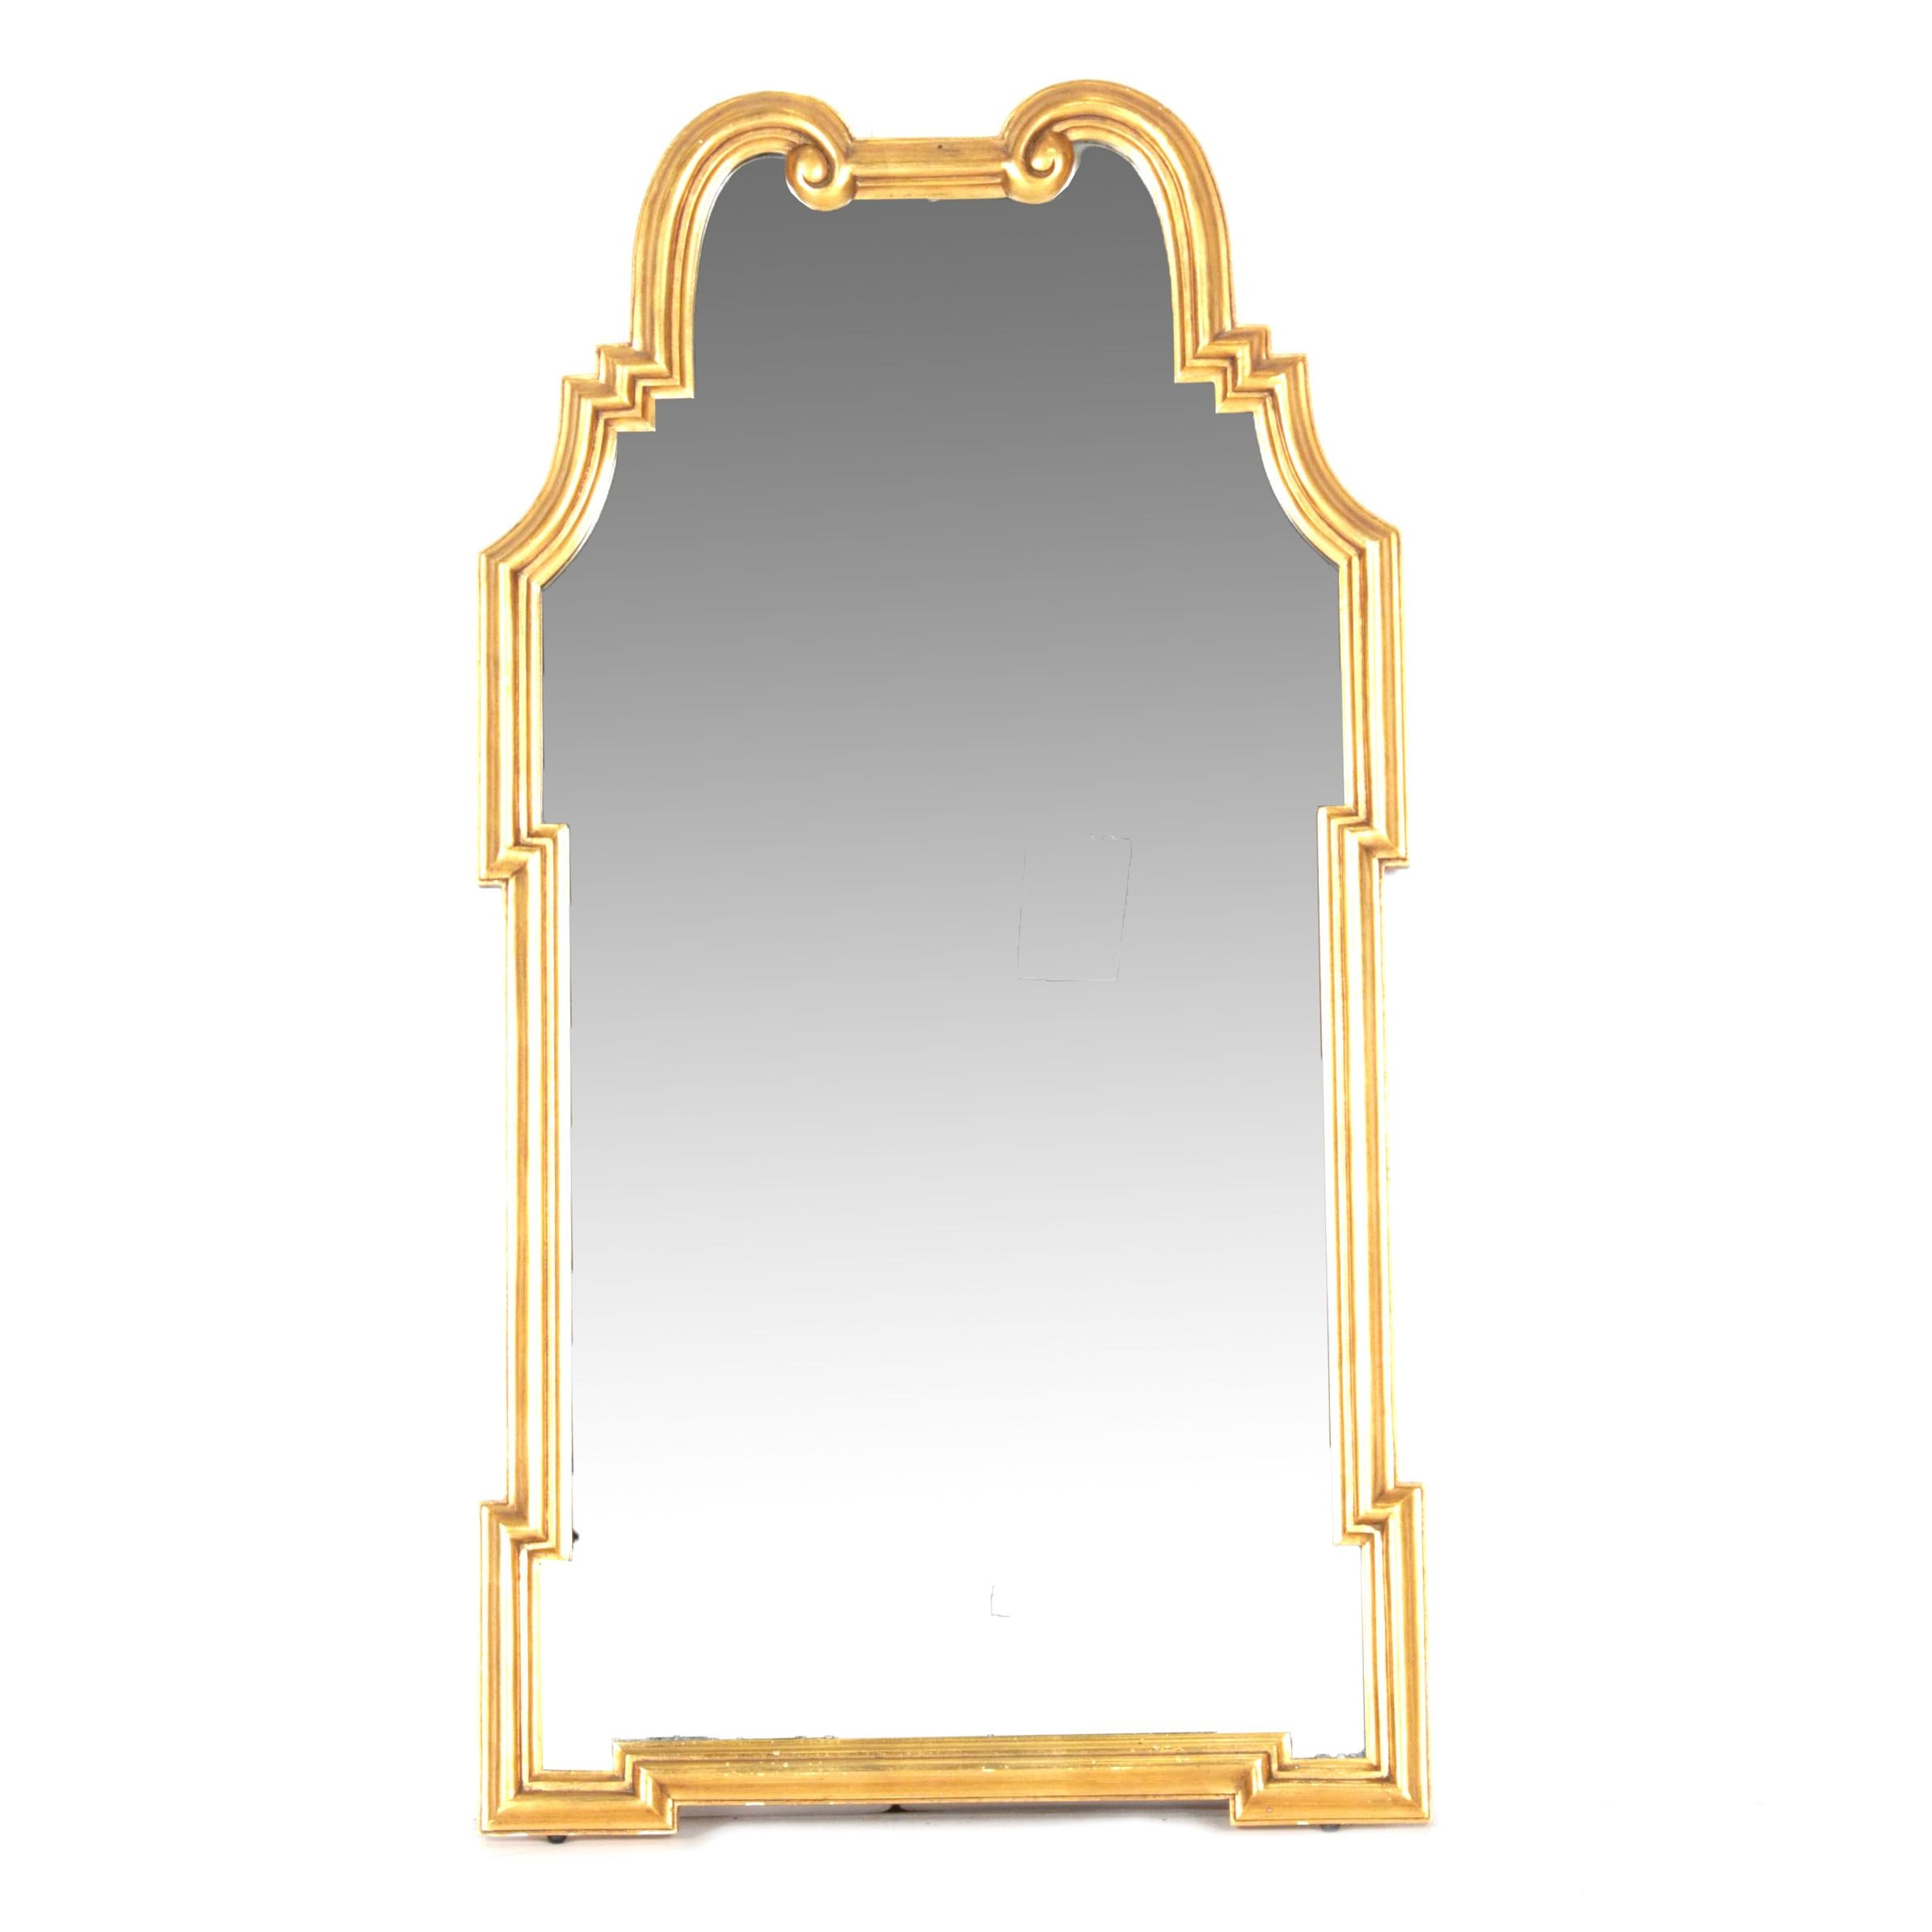 20th Century Directoire Style Gilt Wall Mirror